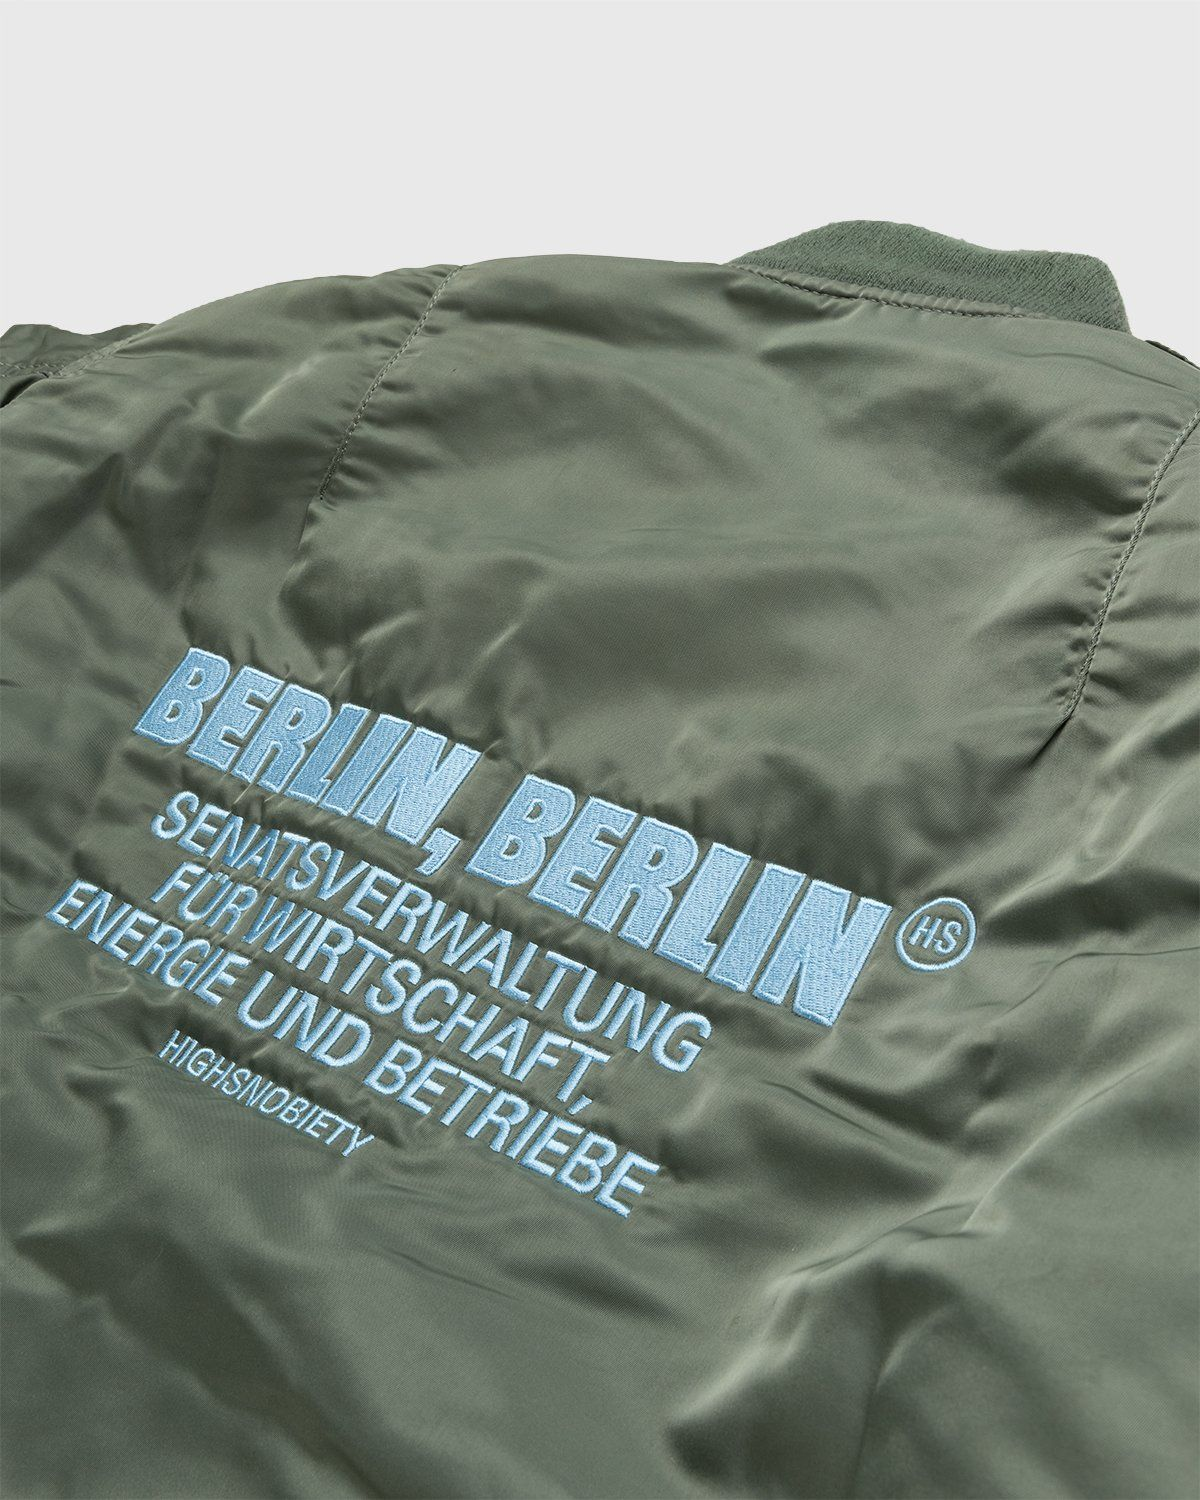 Highsnobiety – Berlin Berlin Embroidered Vintage MA-1 Green - Image 3